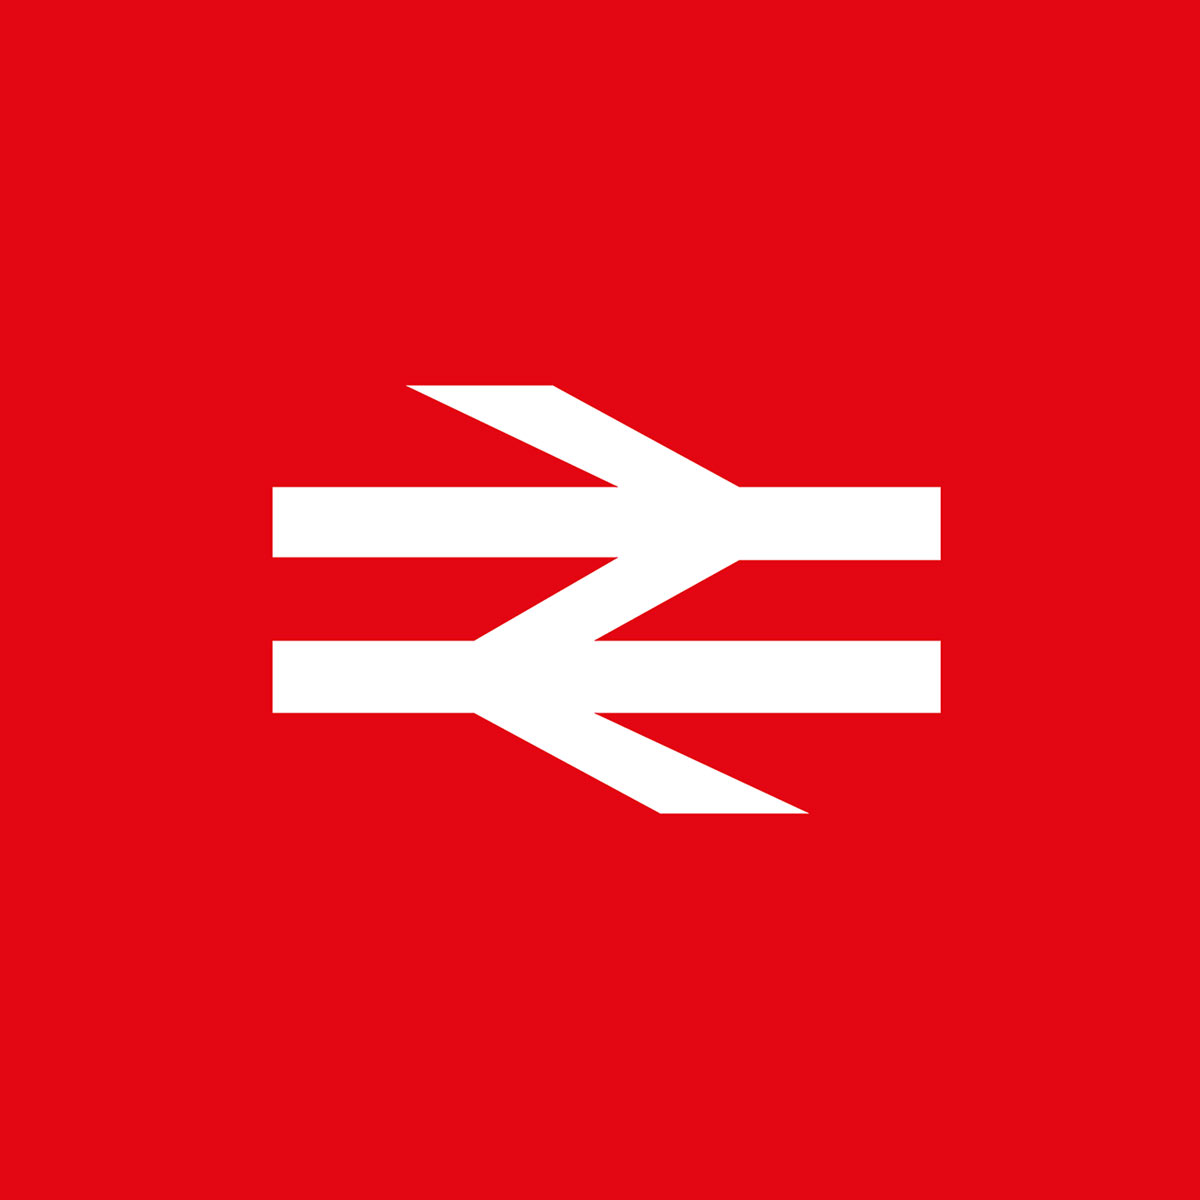 British Rail logo, Design Research Unit